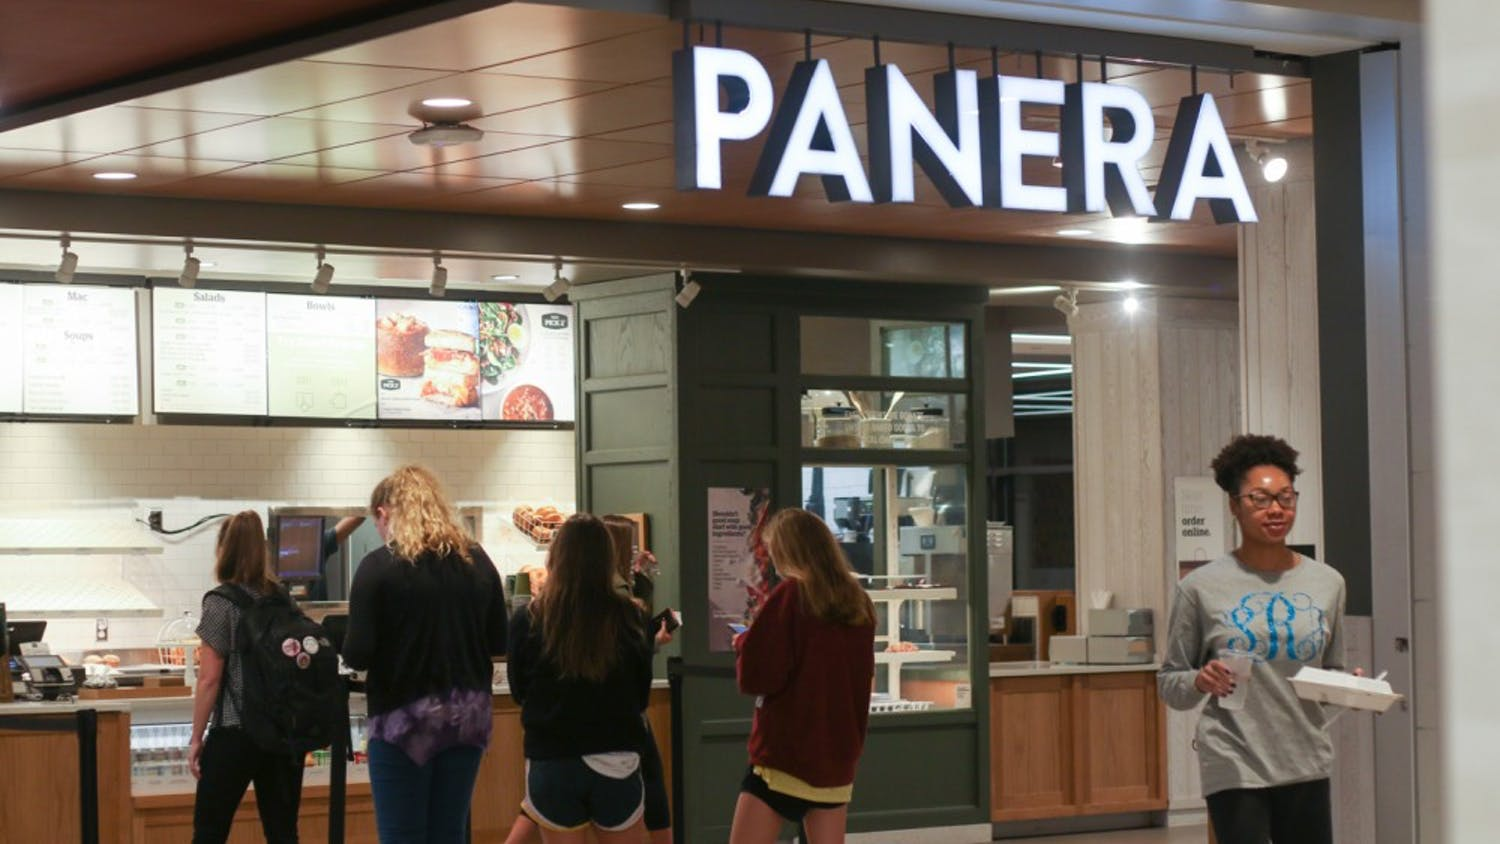 Students stand in line at Panera Bread.